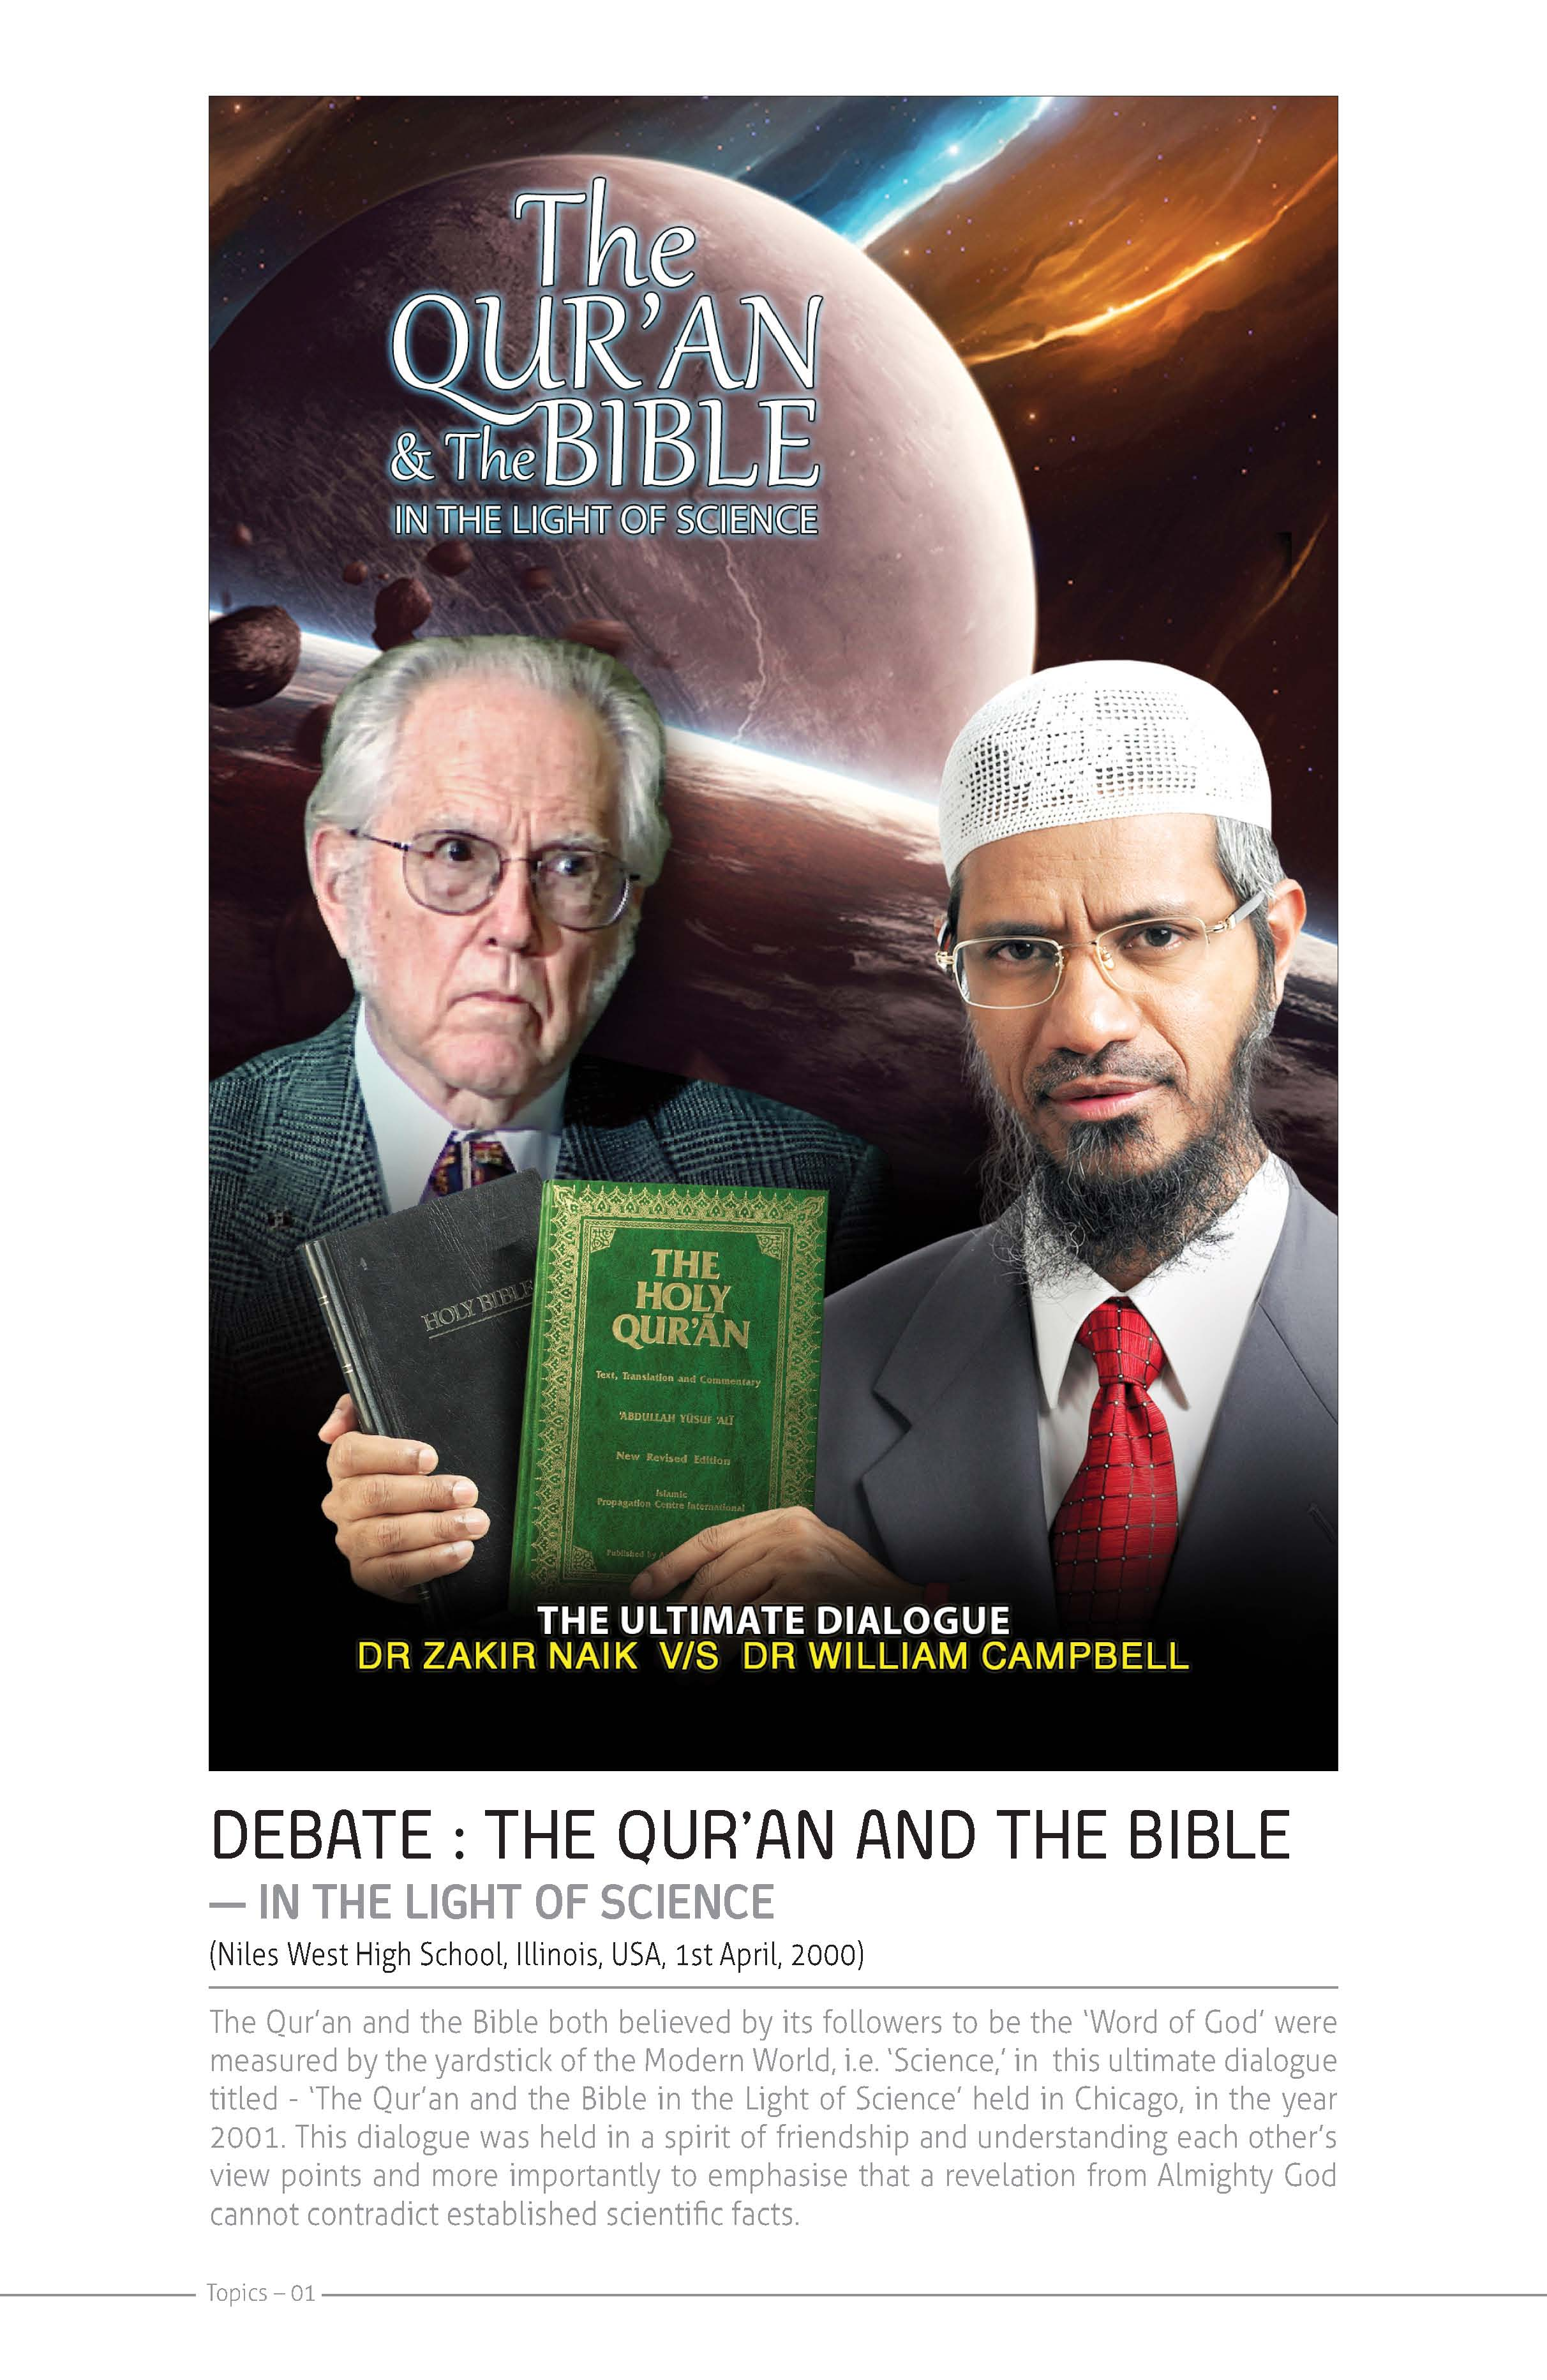 Debate: The Bible and The Qur'an – in the Light of Science Dr Zakir Naik v/s Dr William Campbell